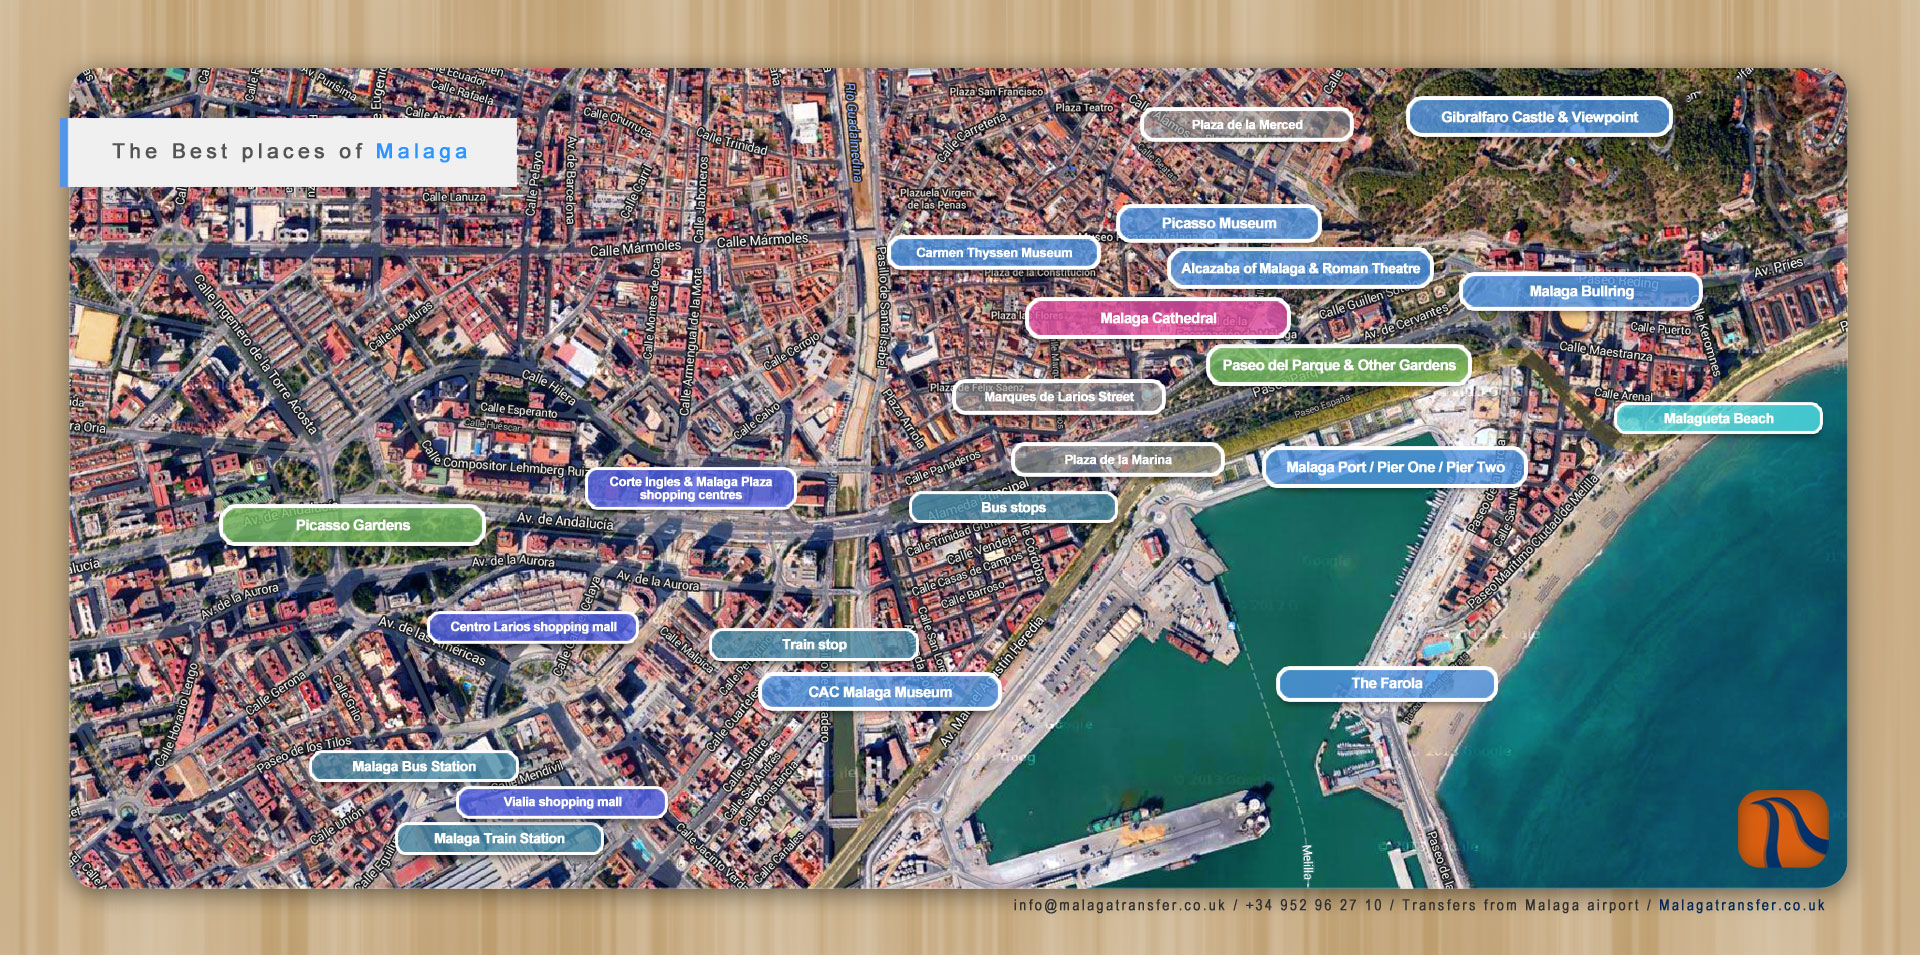 information guide about malaga city  malaga transfer - map of the best places of malaga